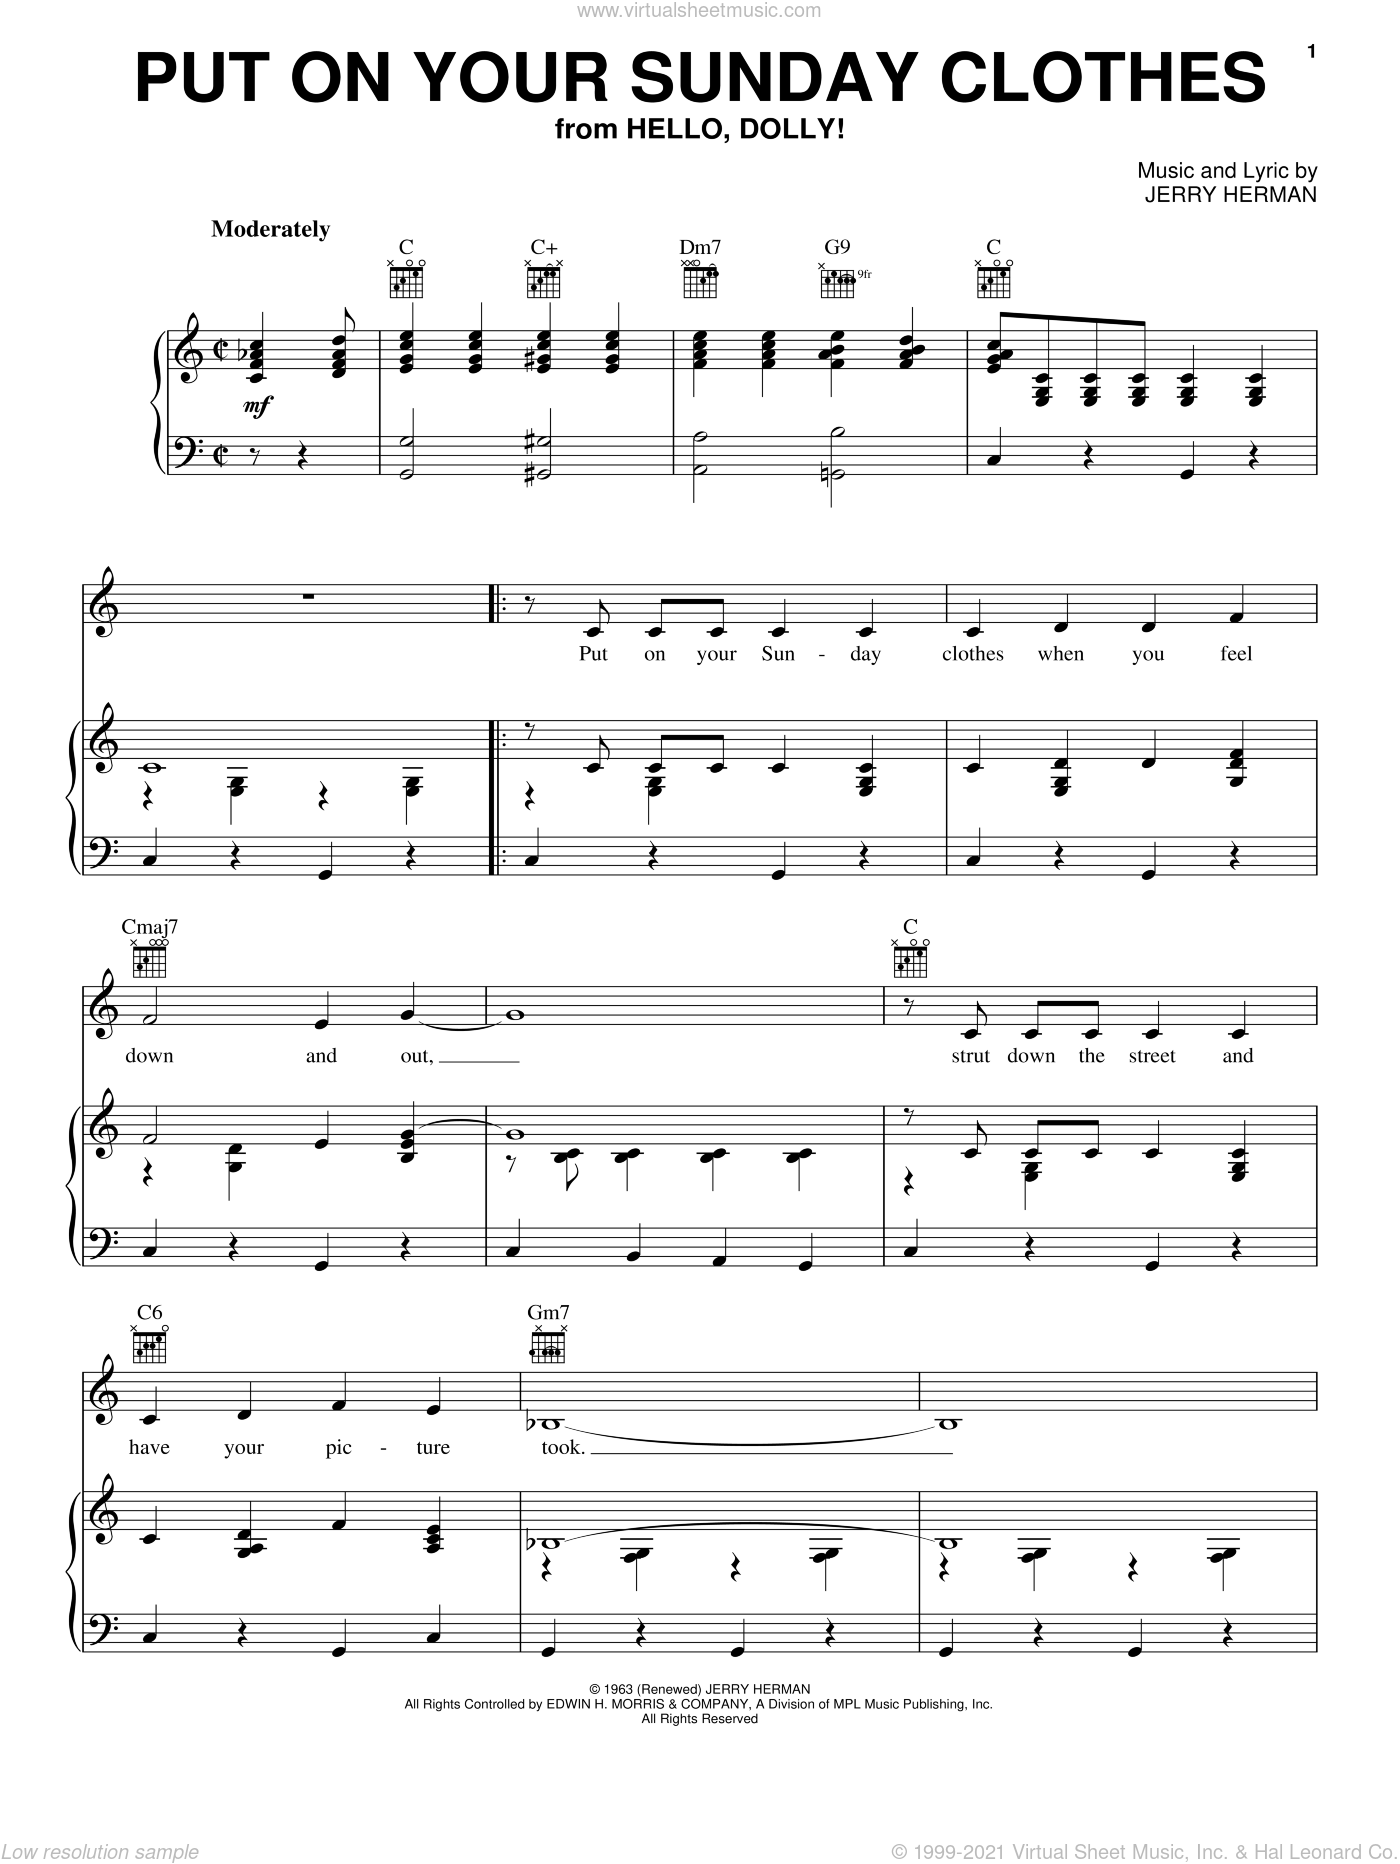 Put On Your Sunday Clothes sheet music for voice, piano or guitar by Jerry Herman and Hello, Dolly! (Musical), intermediate skill level